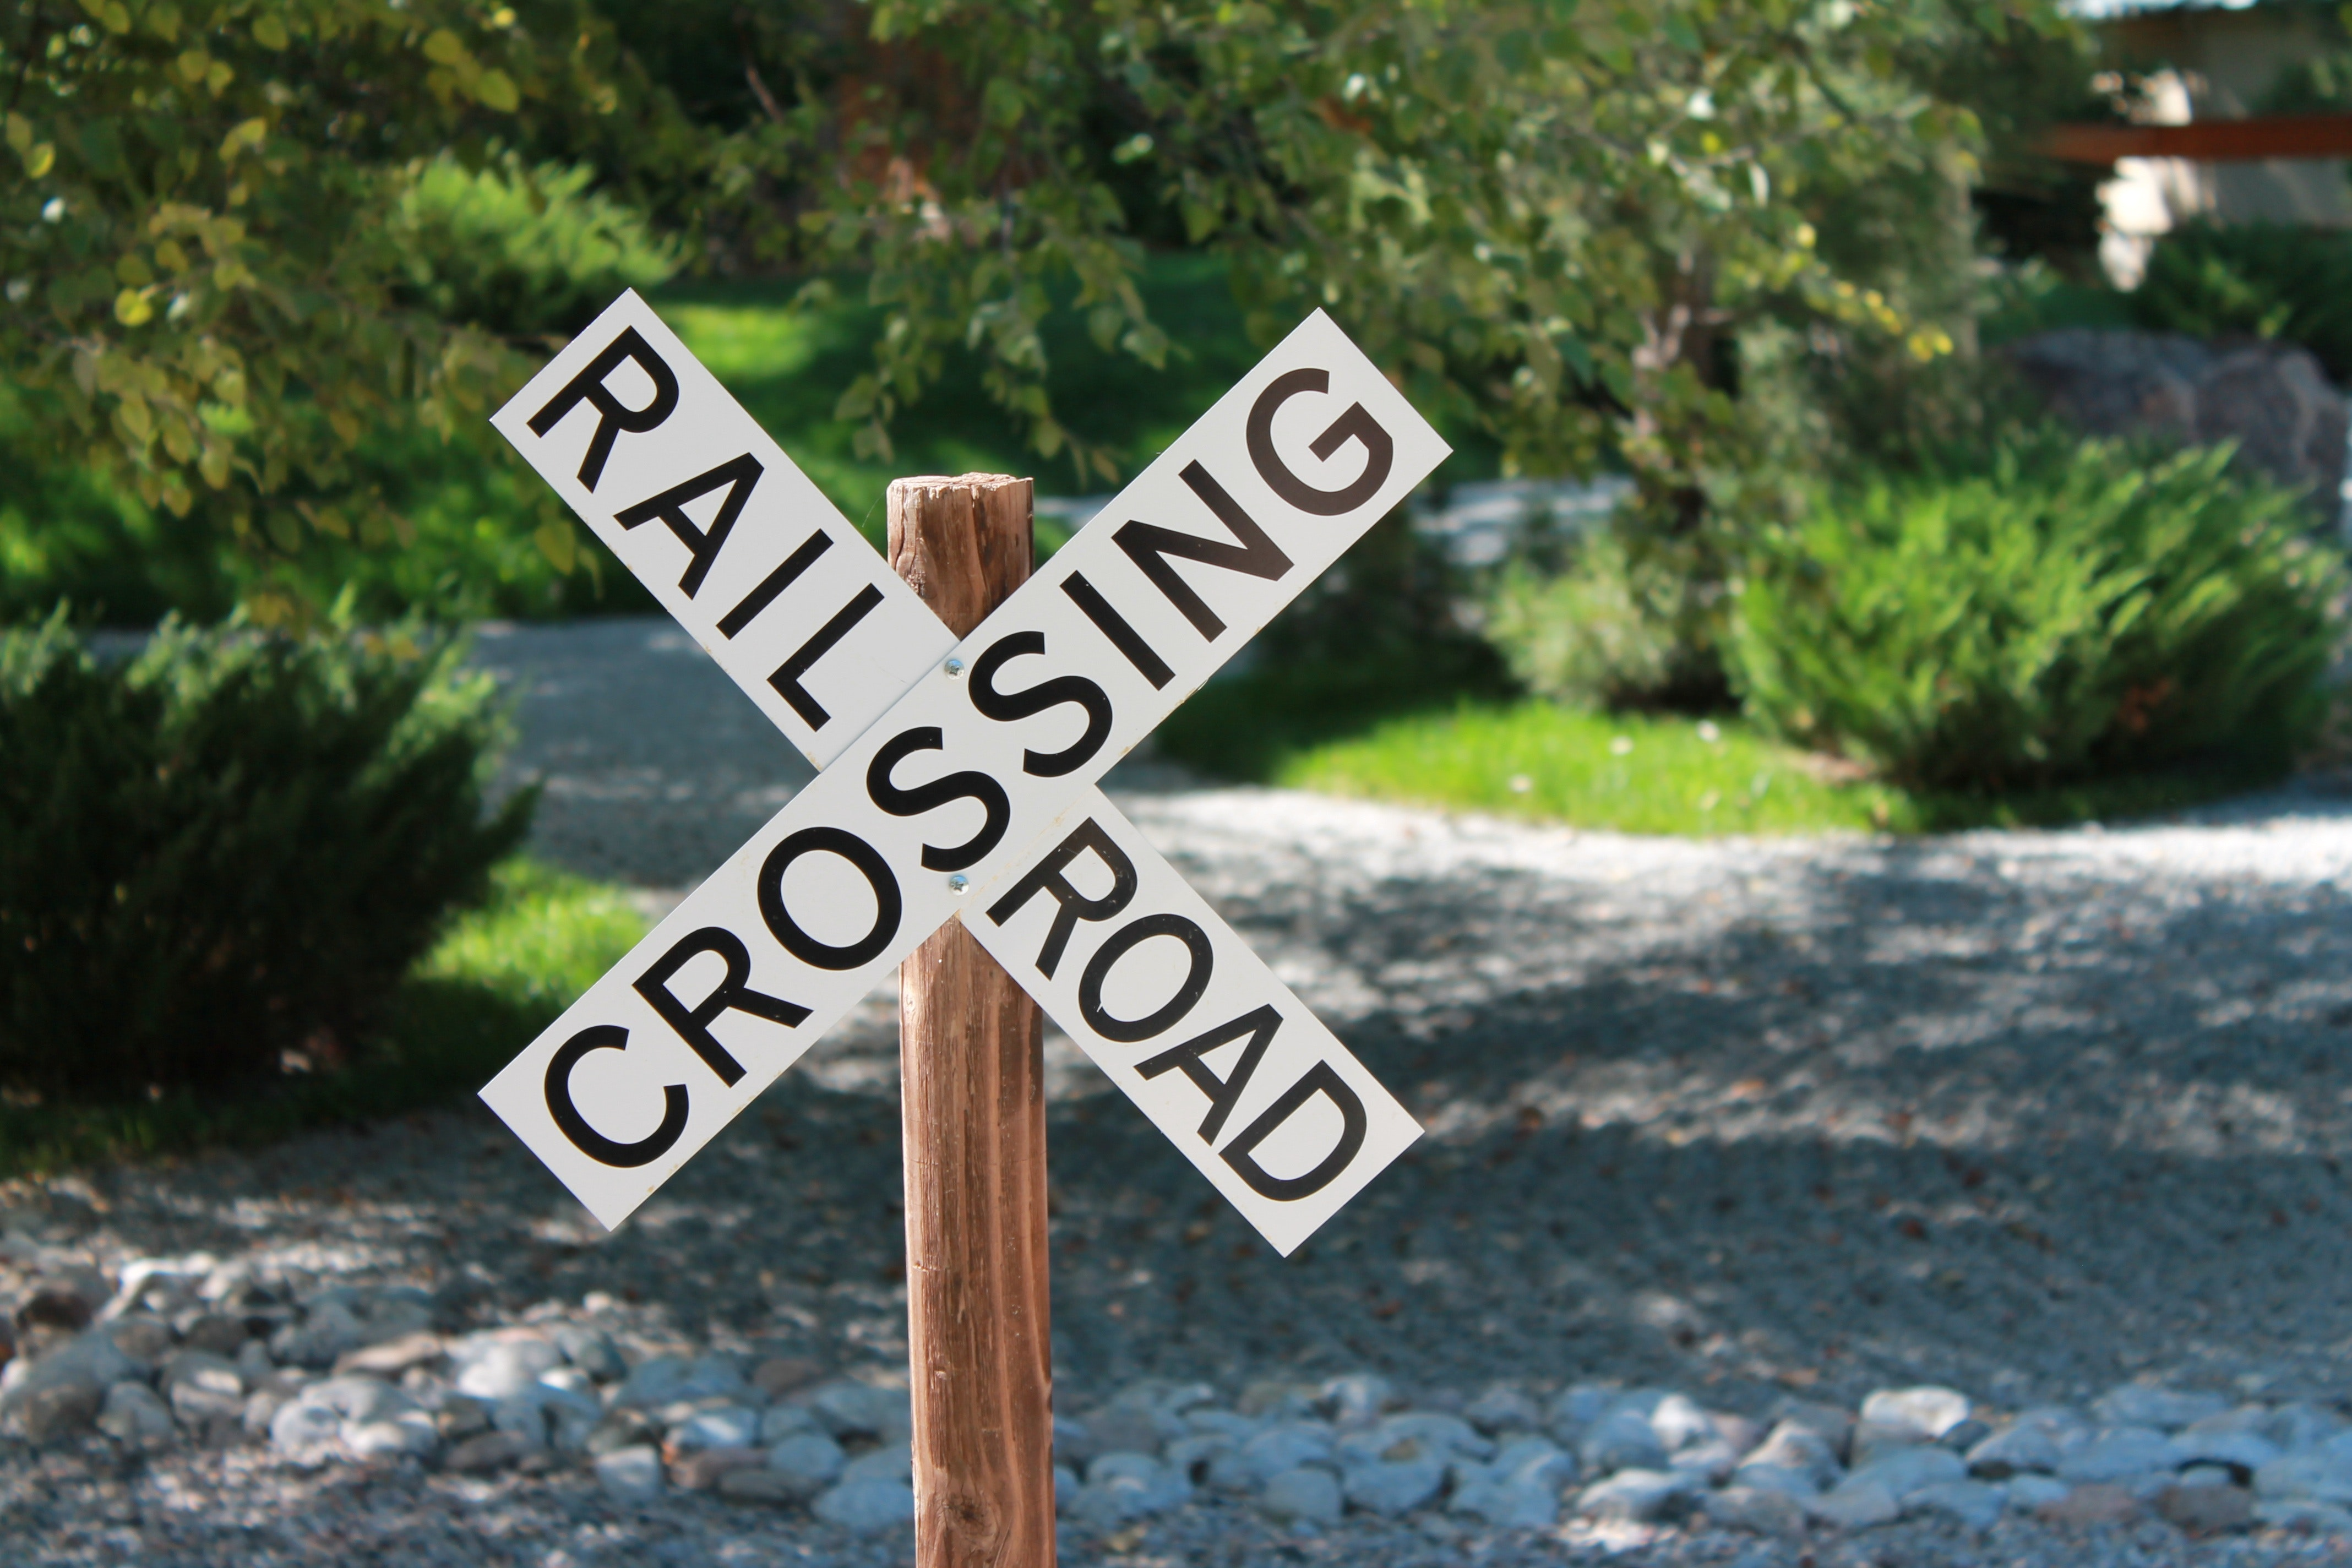 Close-up of road sign photo